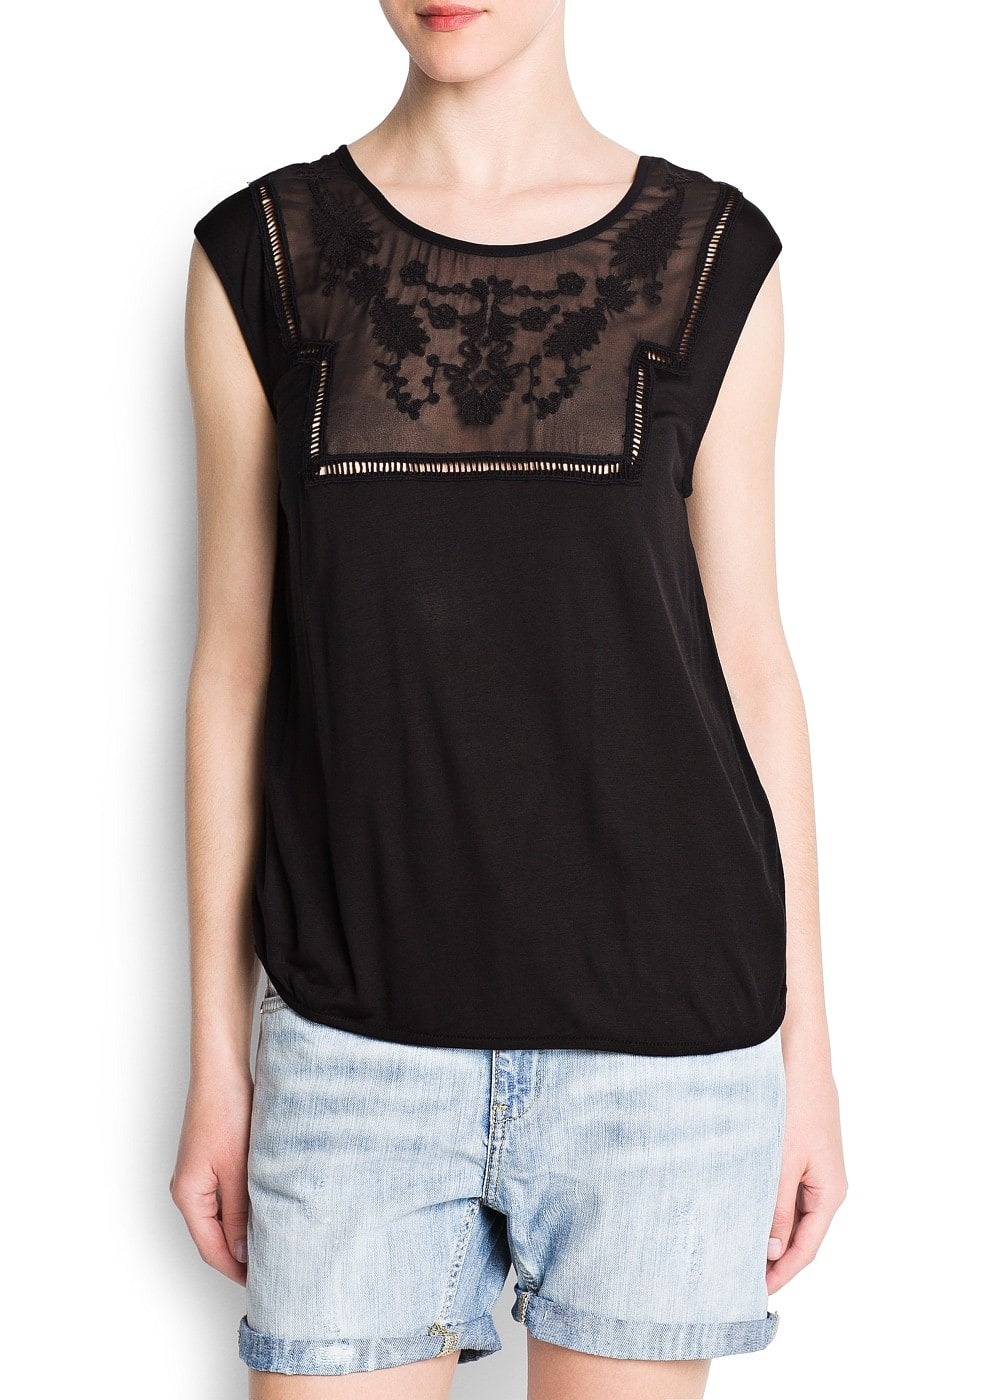 Embroidered sheer detail top